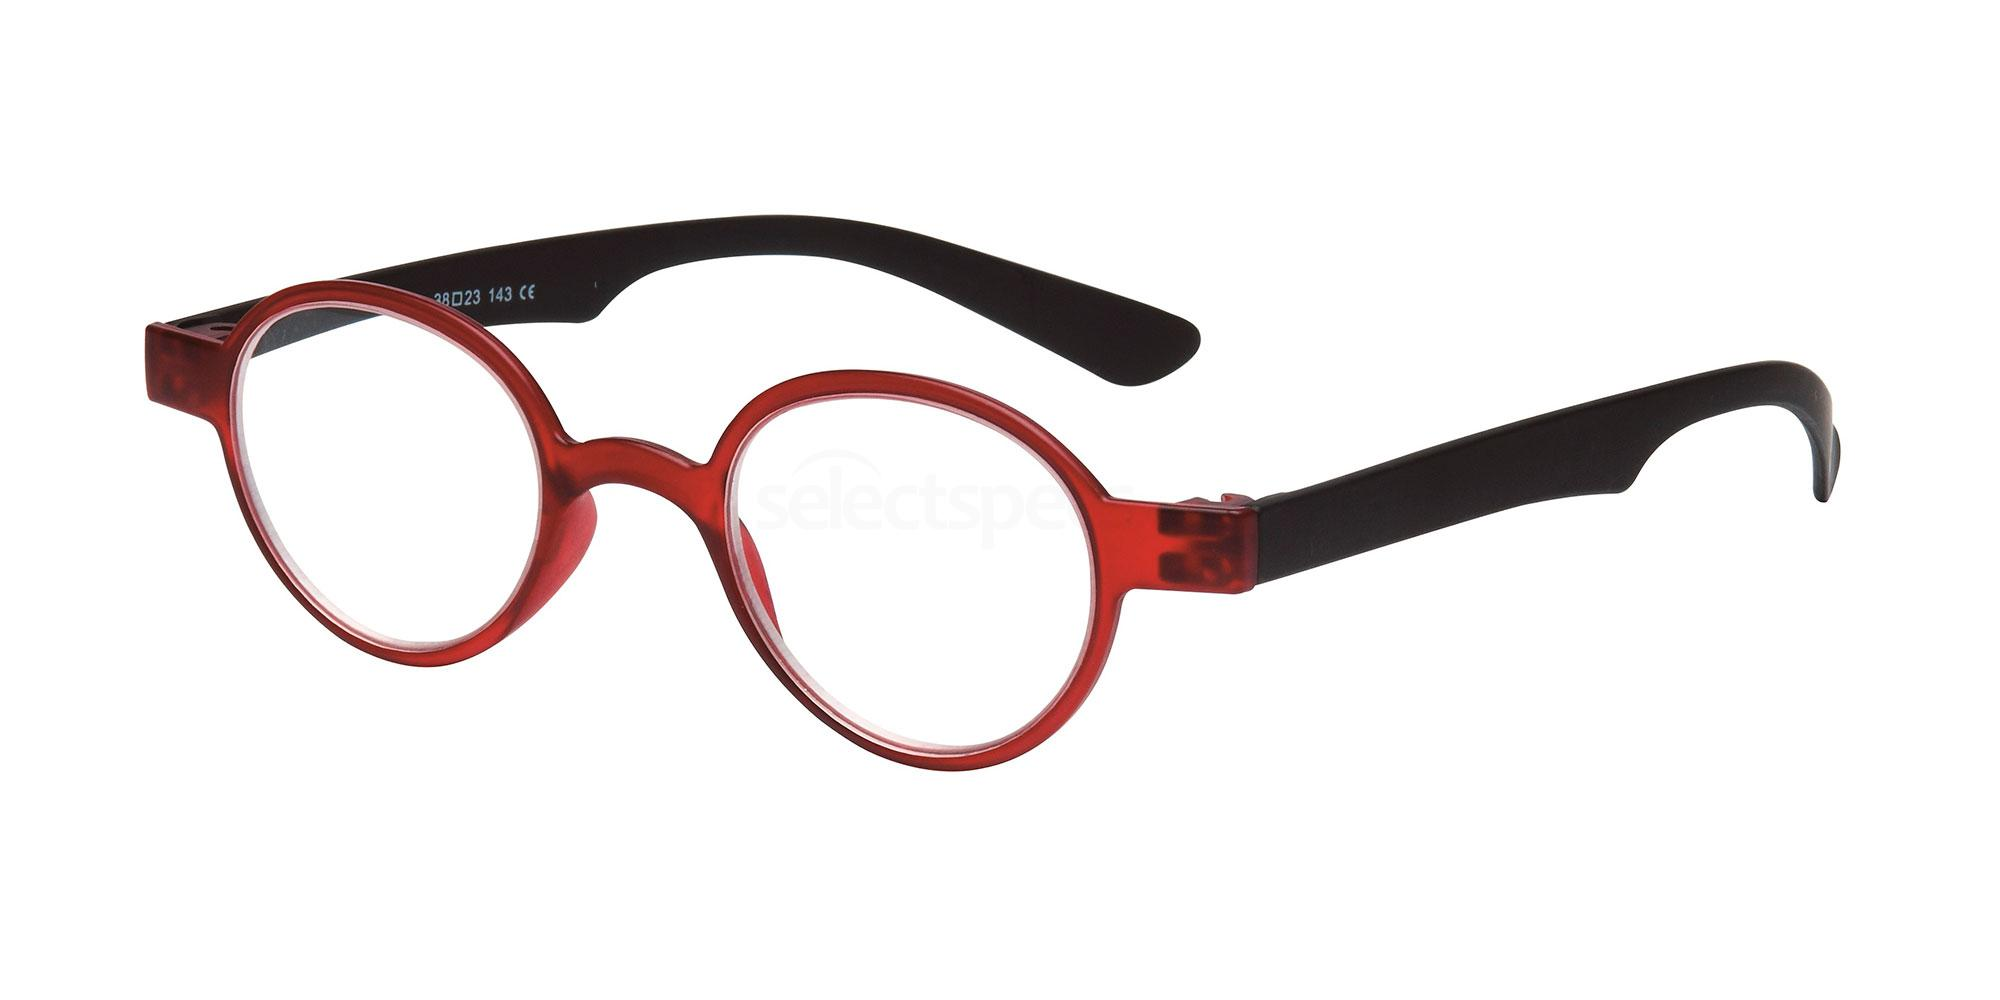 +3.00 Power Readers R17A - A: Red/Black Accessories, Univo Readers